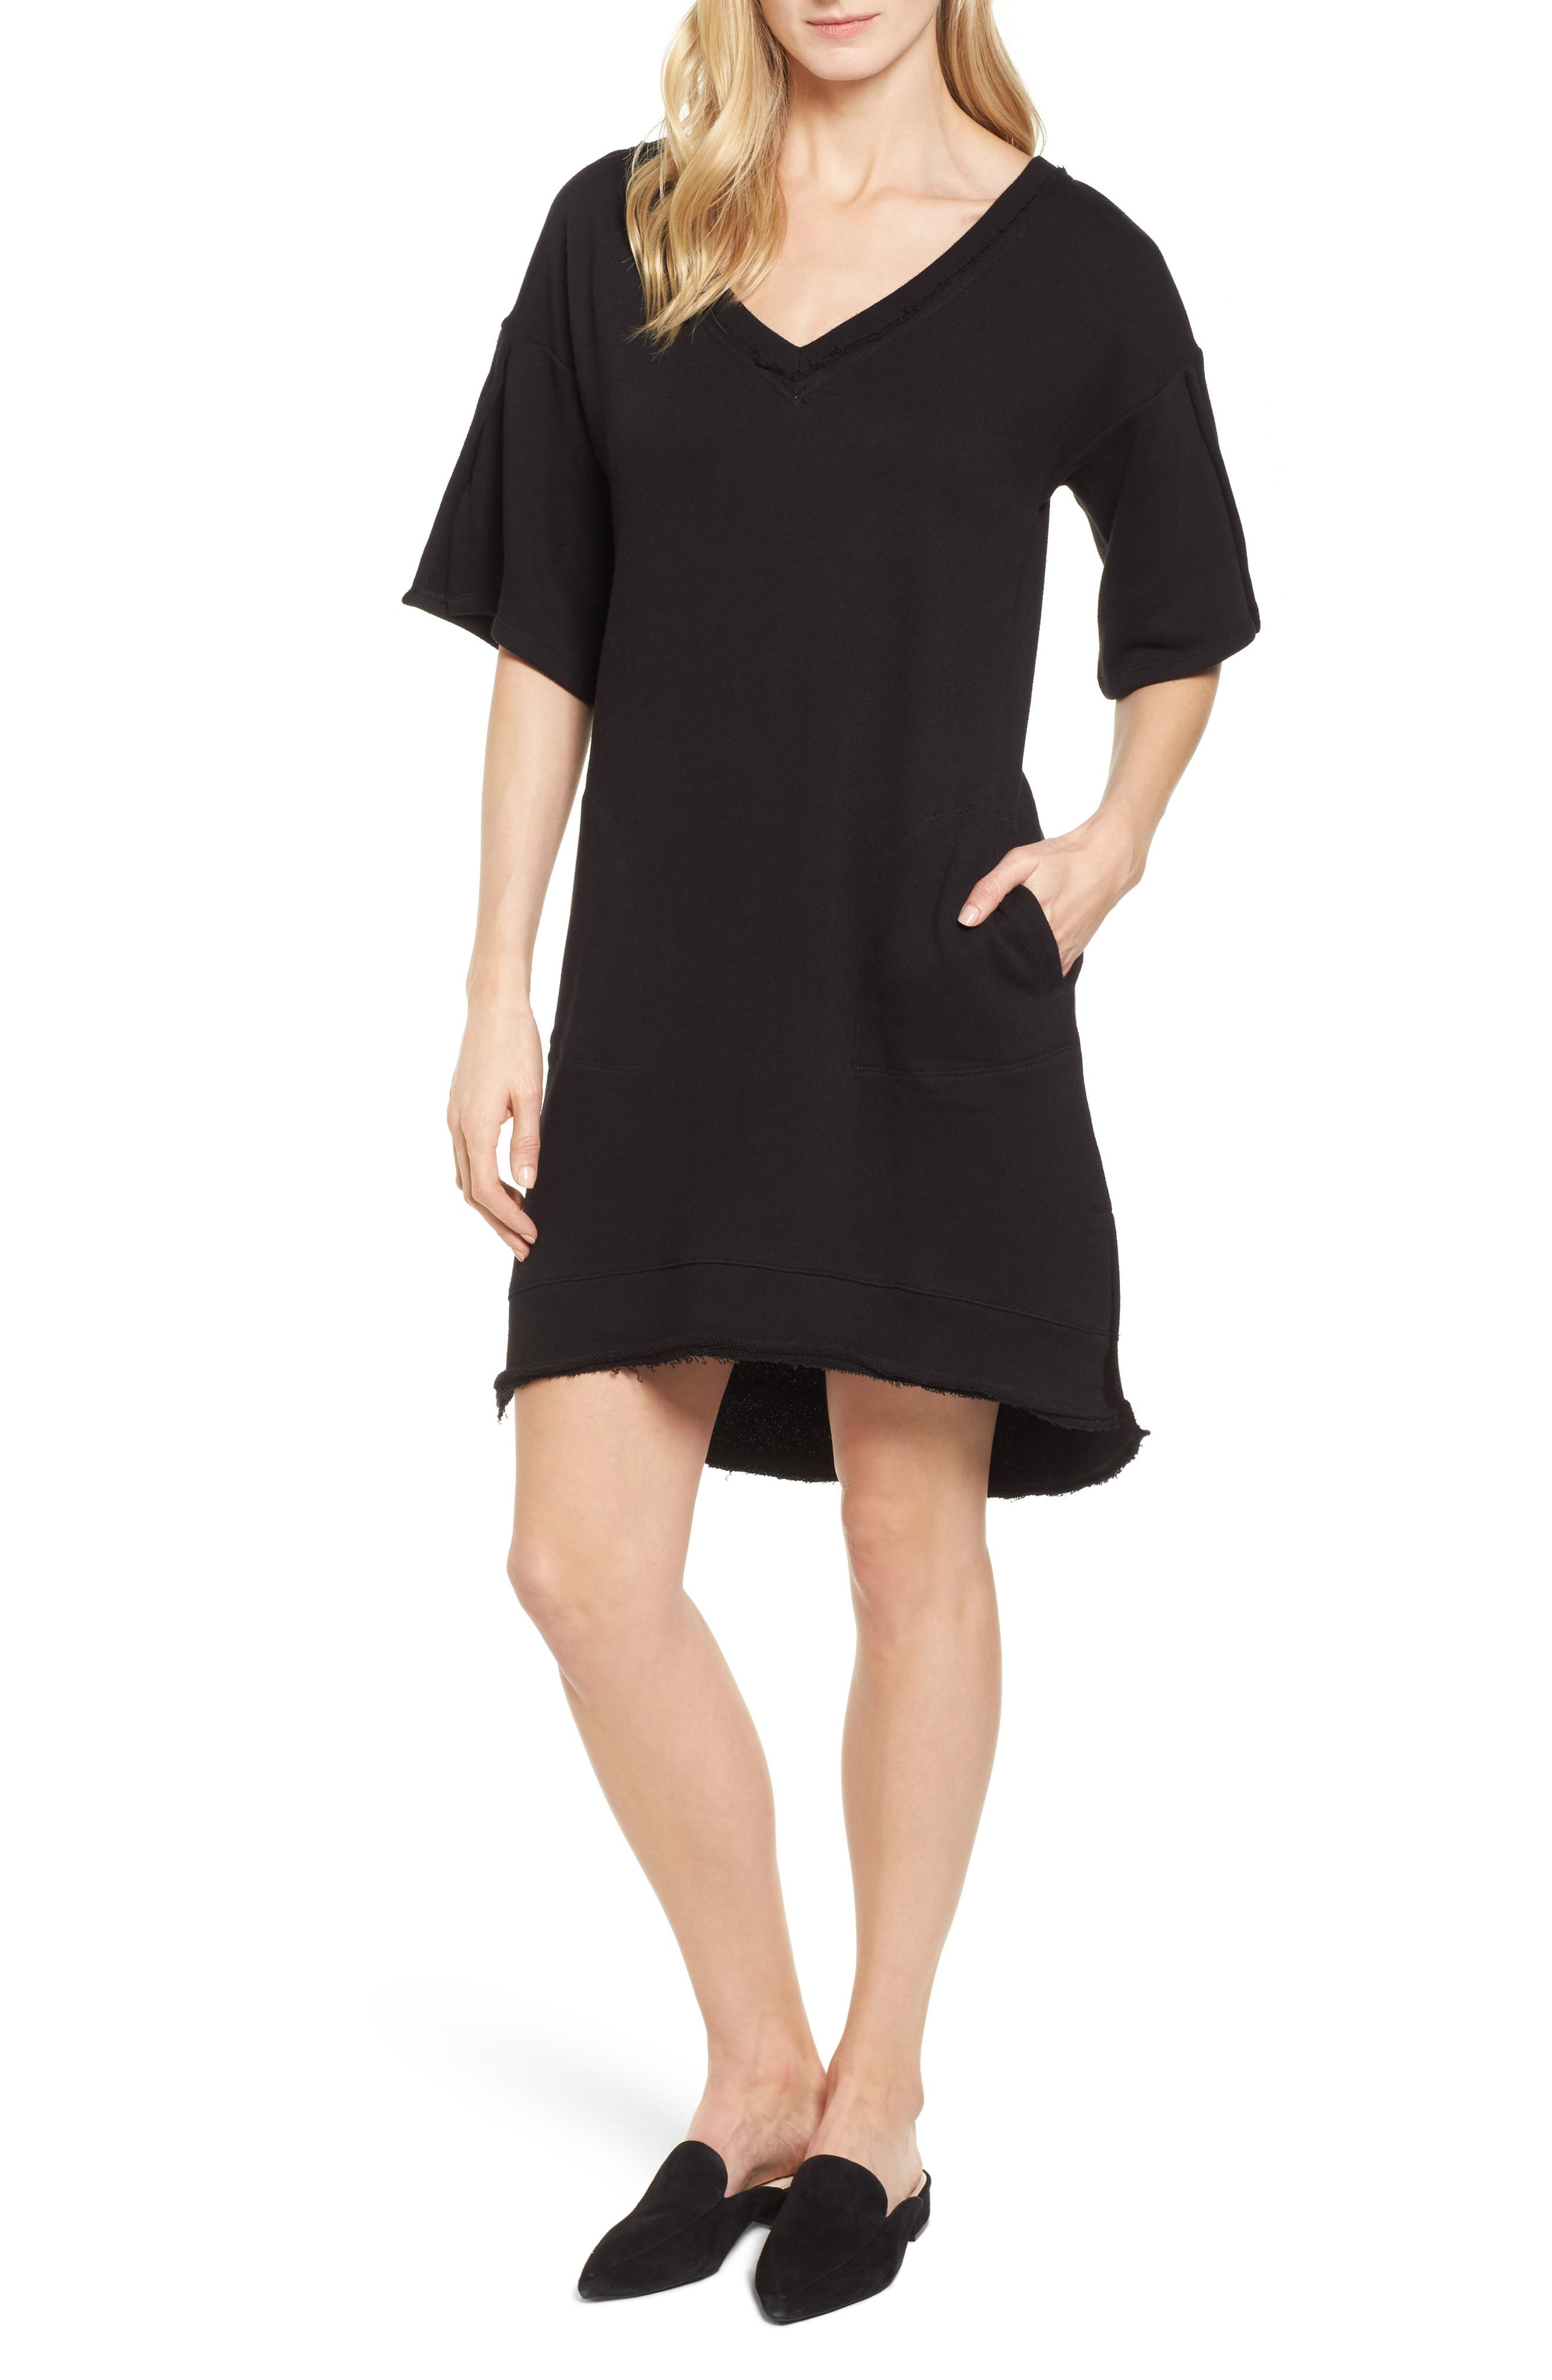 Alternate Image 1 Selected - Caslon® Lace-Up T-Shirt Dress